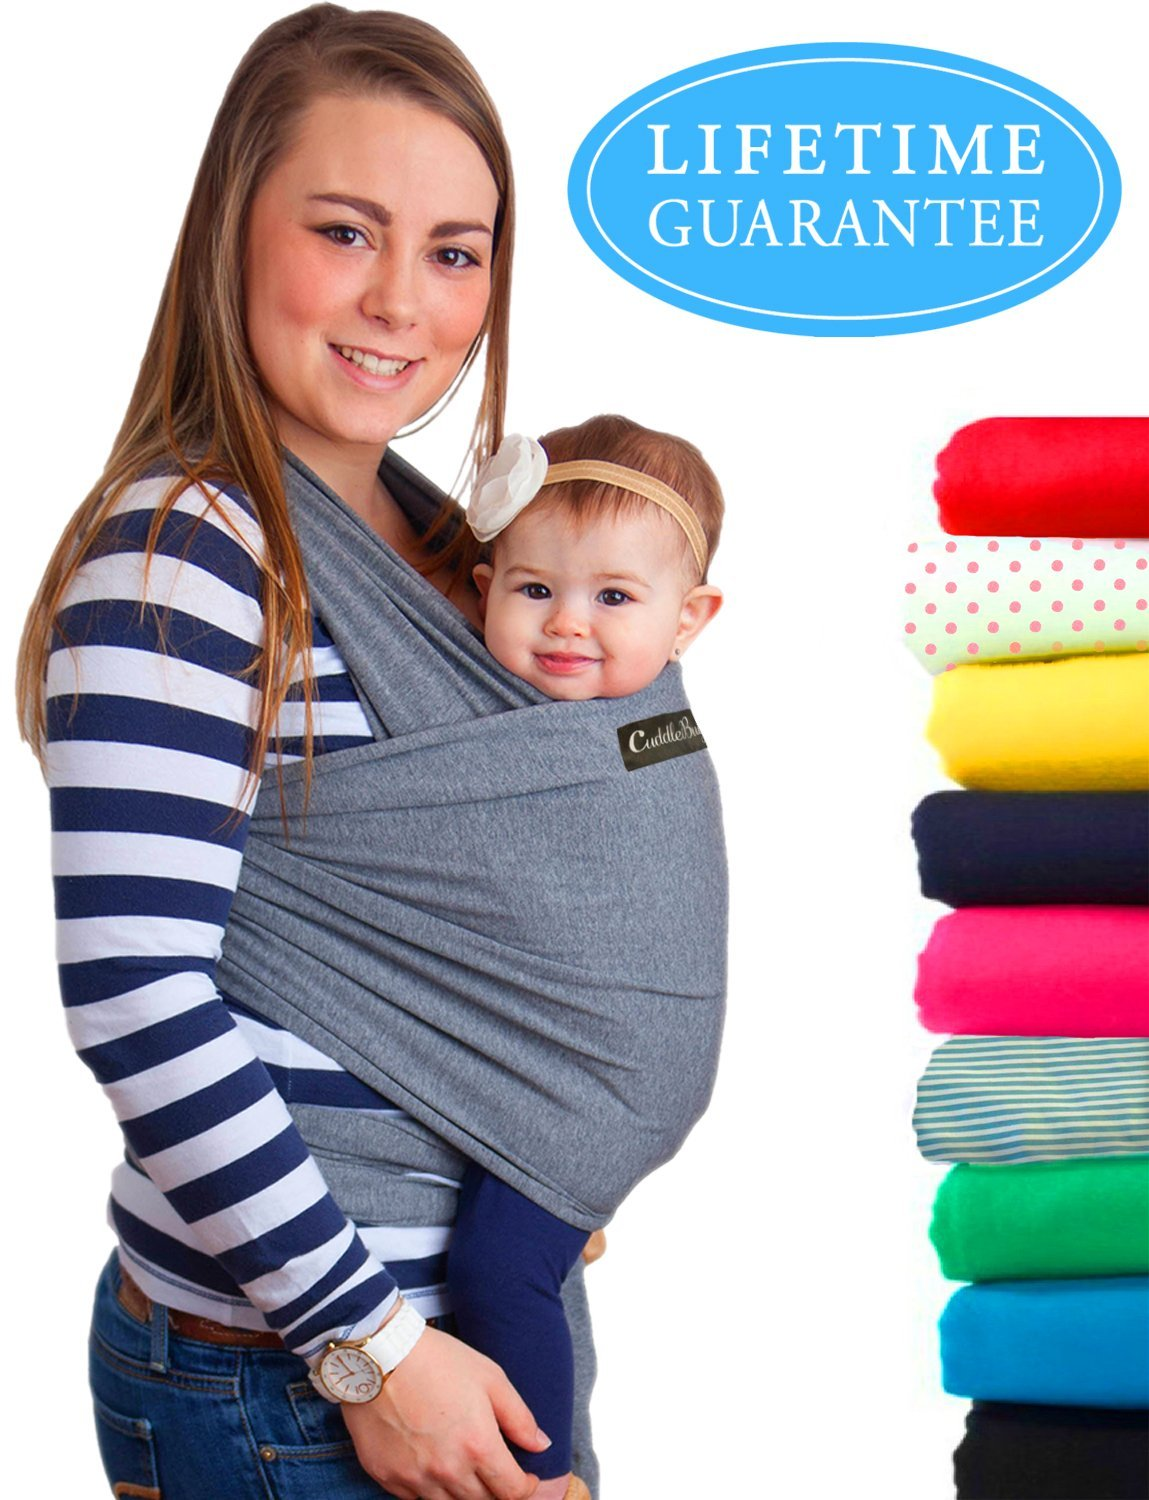 da6549b55f2 Baby Wrap Ergo Carrier Sling - by CuddleBug - Available in 8 Colors - Baby  Sling